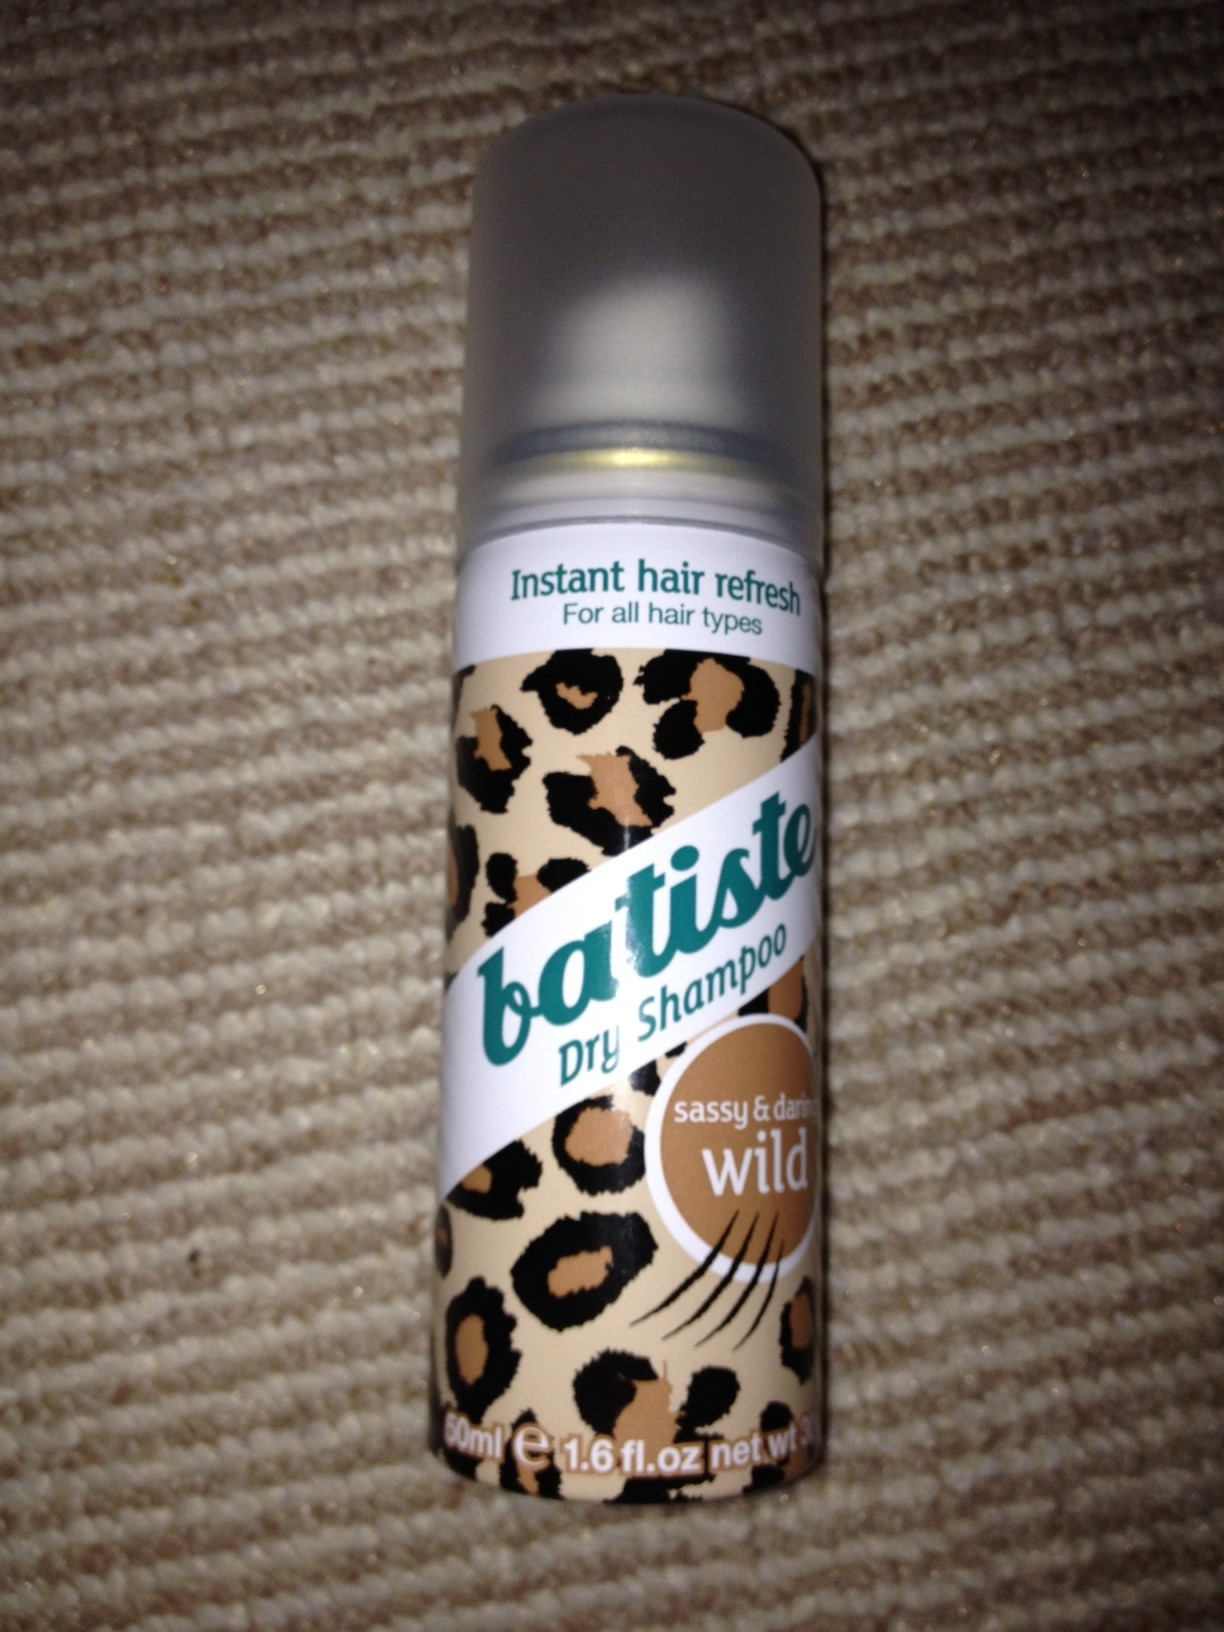 And The Award For Saving My Hair Goes To Rebecca Barnes Batiste Dry Shampoo Wild